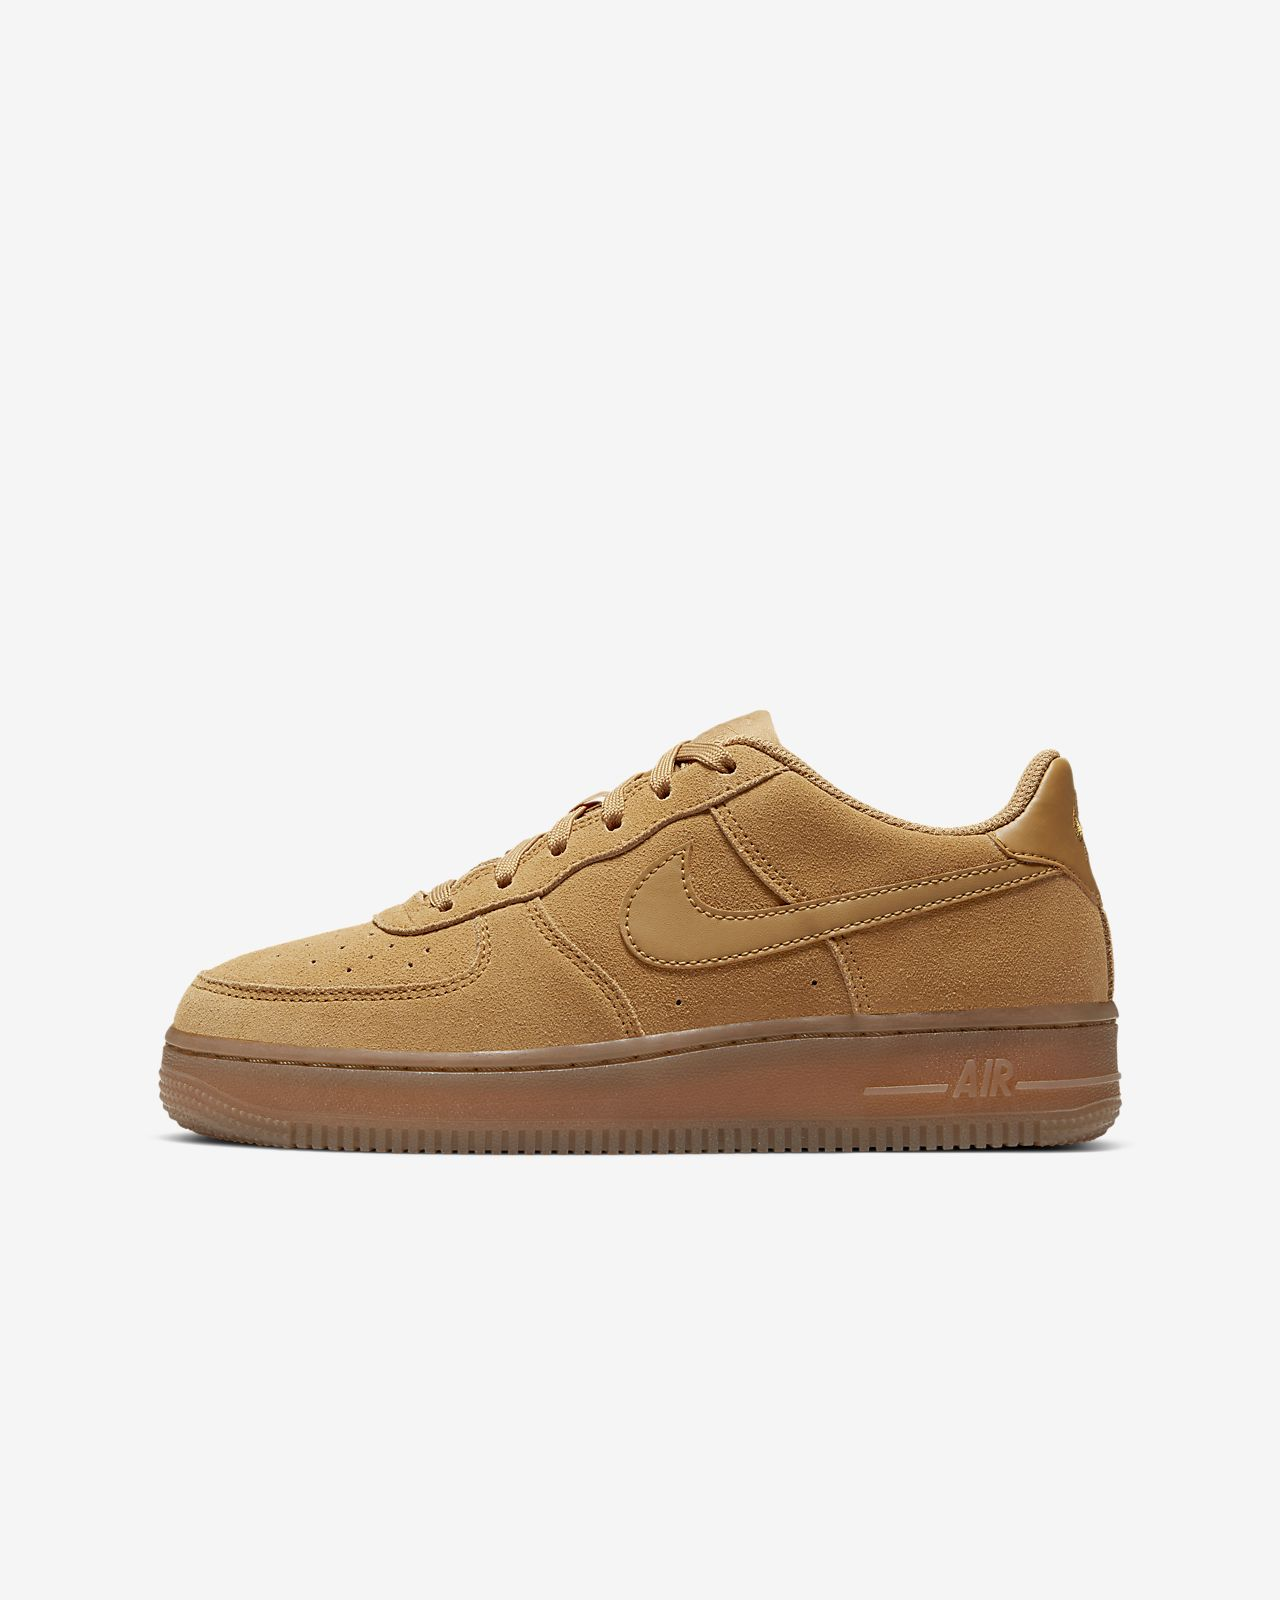 Nike Air Force 1 LV8 3 Big Kids' Shoe